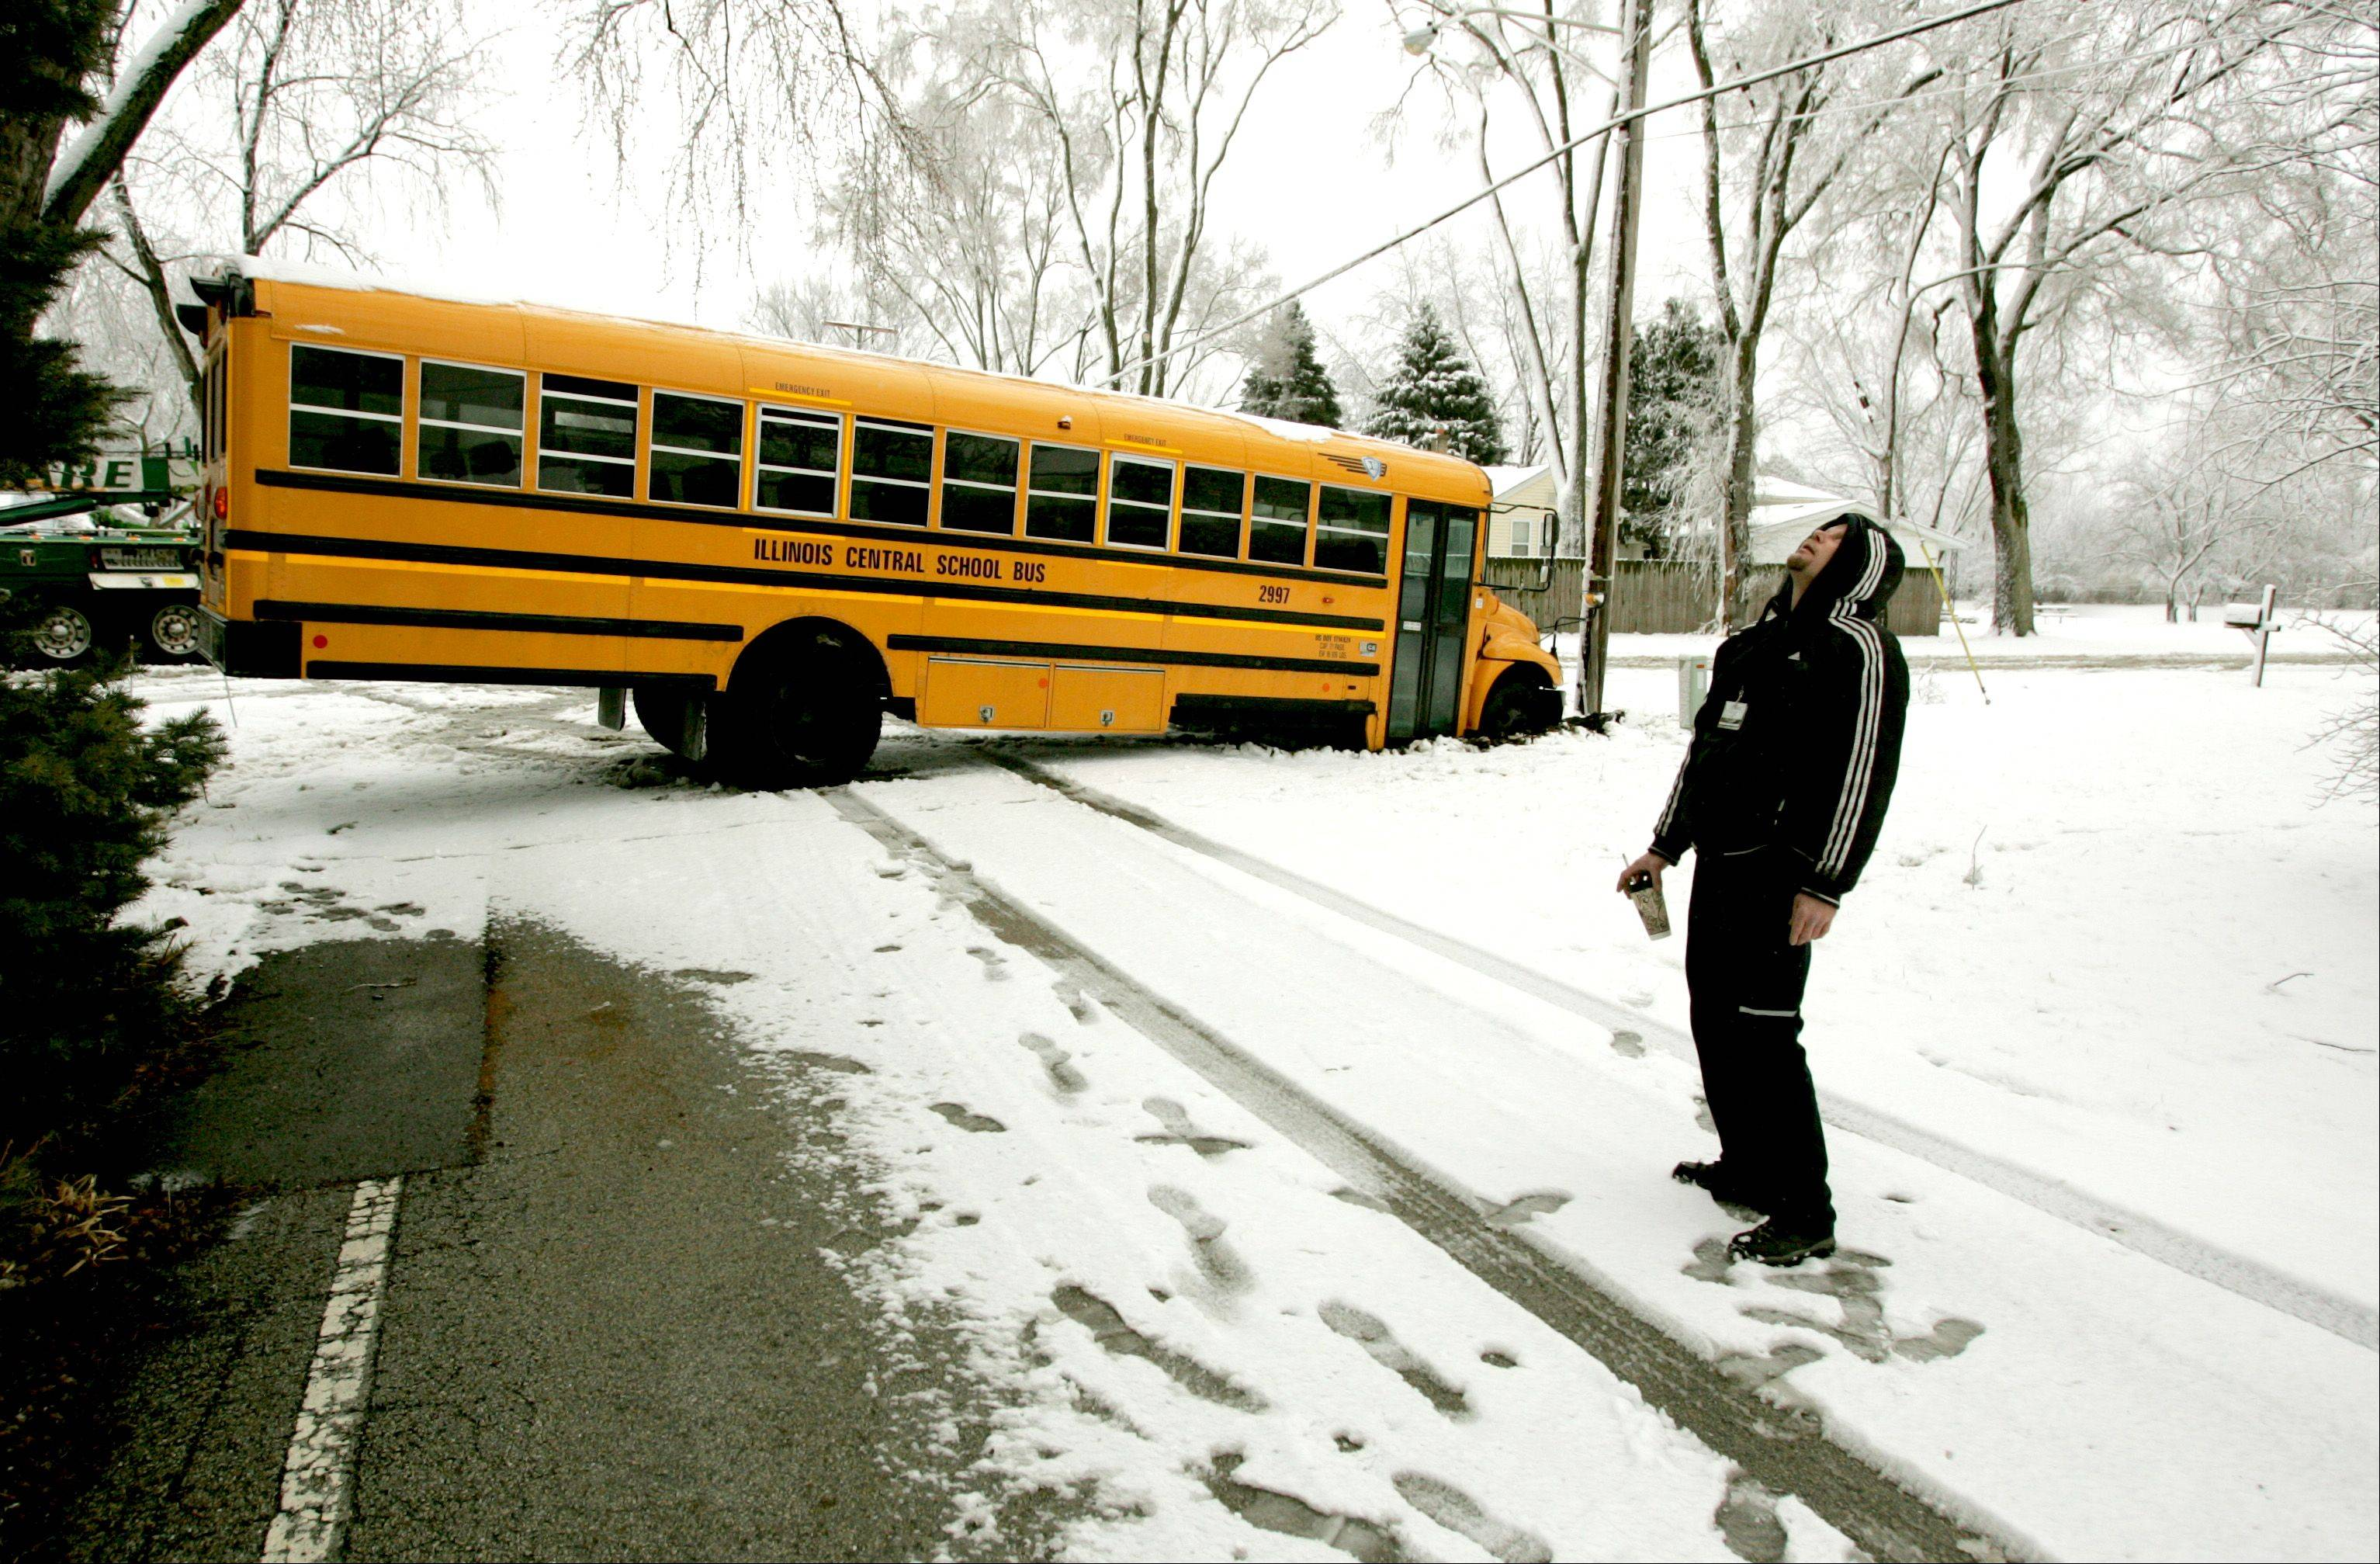 No injuries were reported Friday when a school bus carrying roughly two dozen first- and second-graders slid off an icy Lisle street and became stuck in the mud and snow of resident Raymond Roe's yard at the intersection of Lacey and Dumoulin.